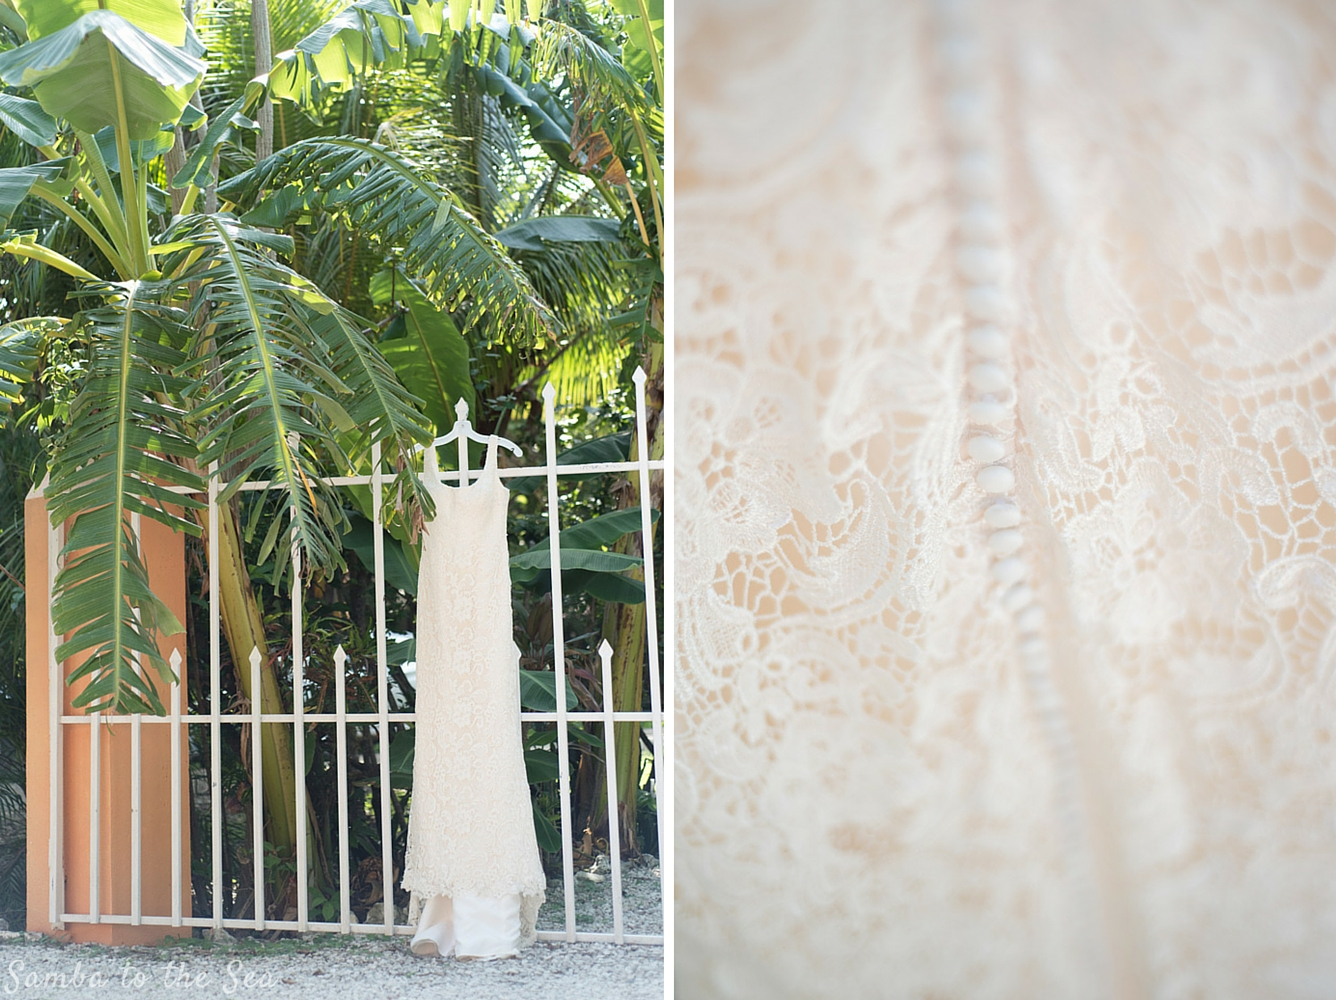 Wedding dress hanging at Teak Pacific Hotel in Nosara, Costa Rica. Photographed by Kristen M. Brown, Samba to the Sea Photography.